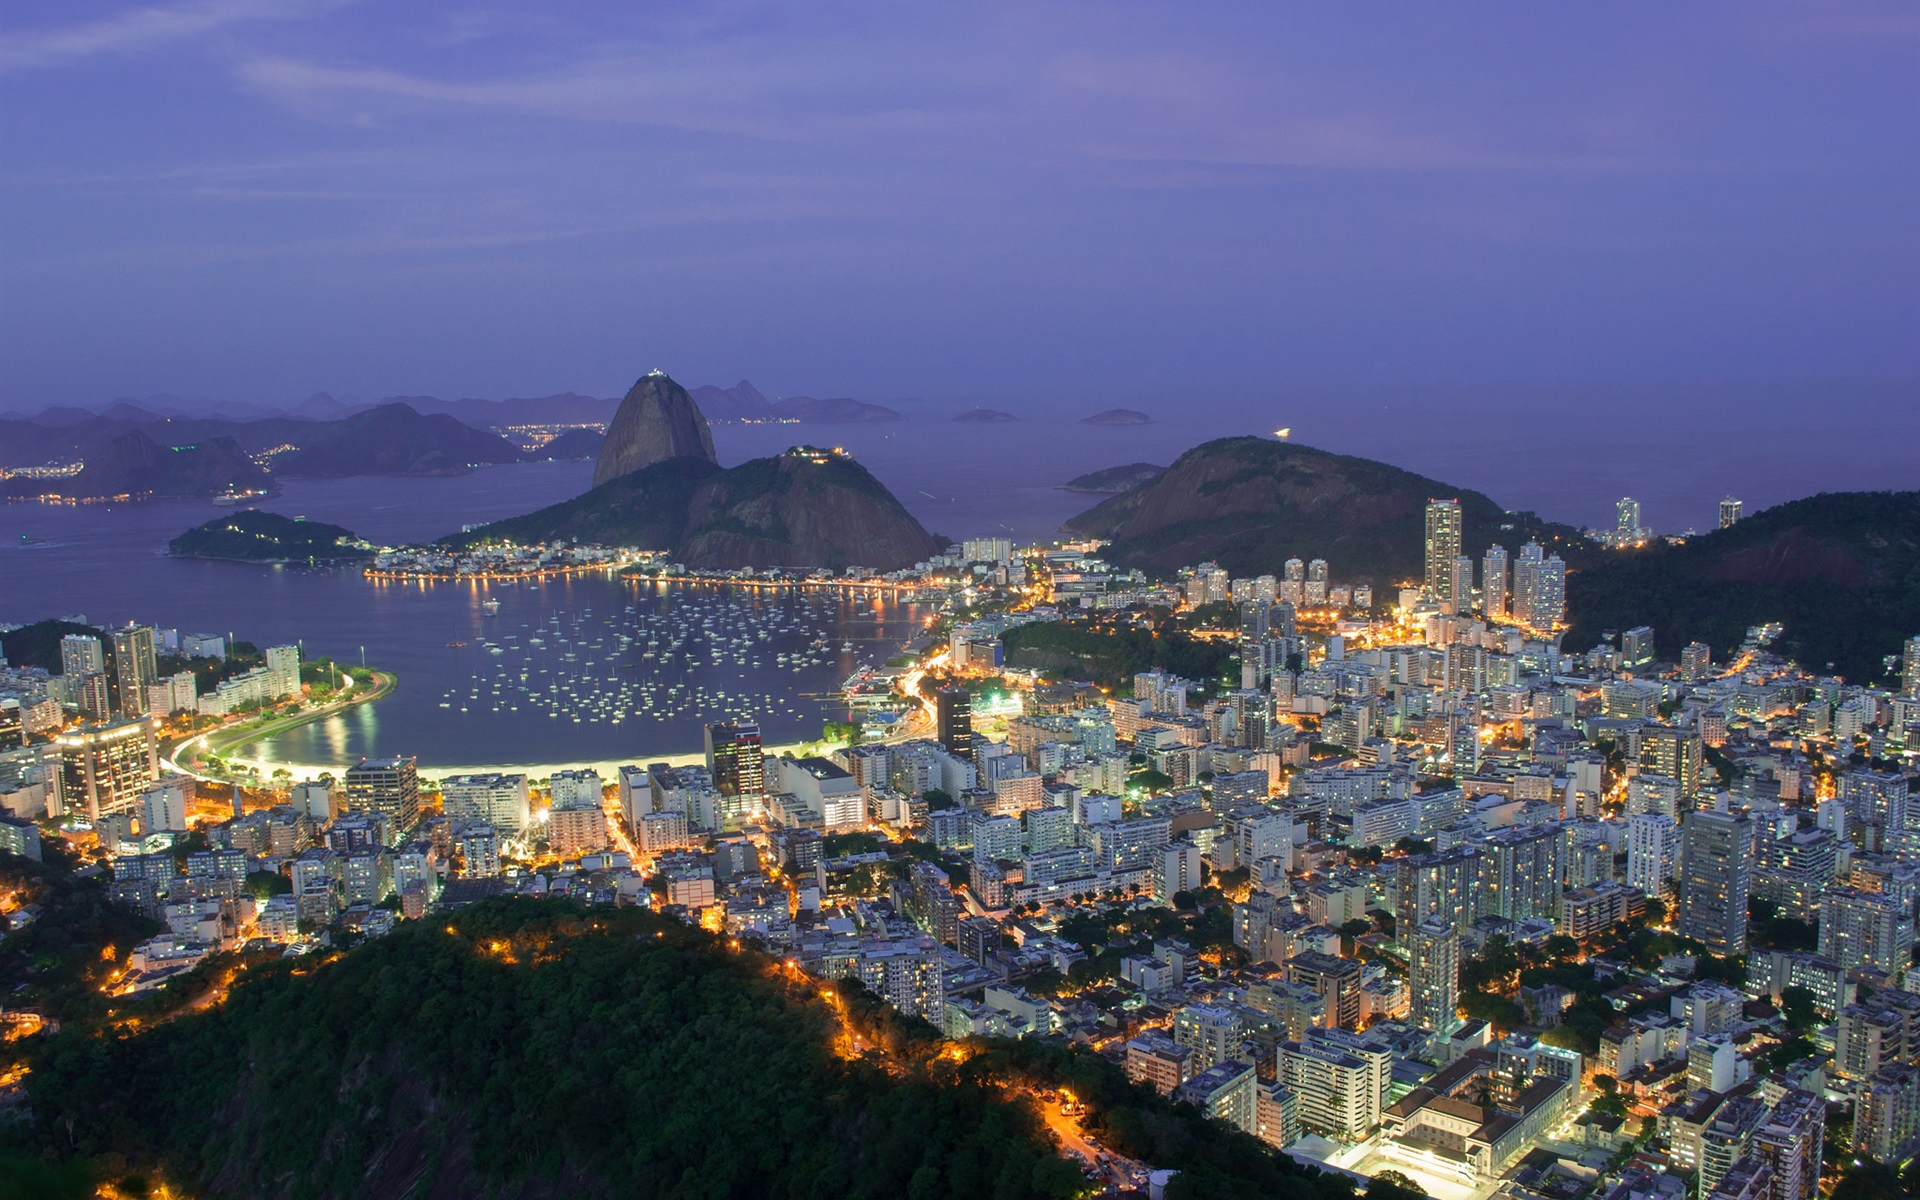 Wallpaper Travel To Brazil Rio De Janeiro City Evening Lights